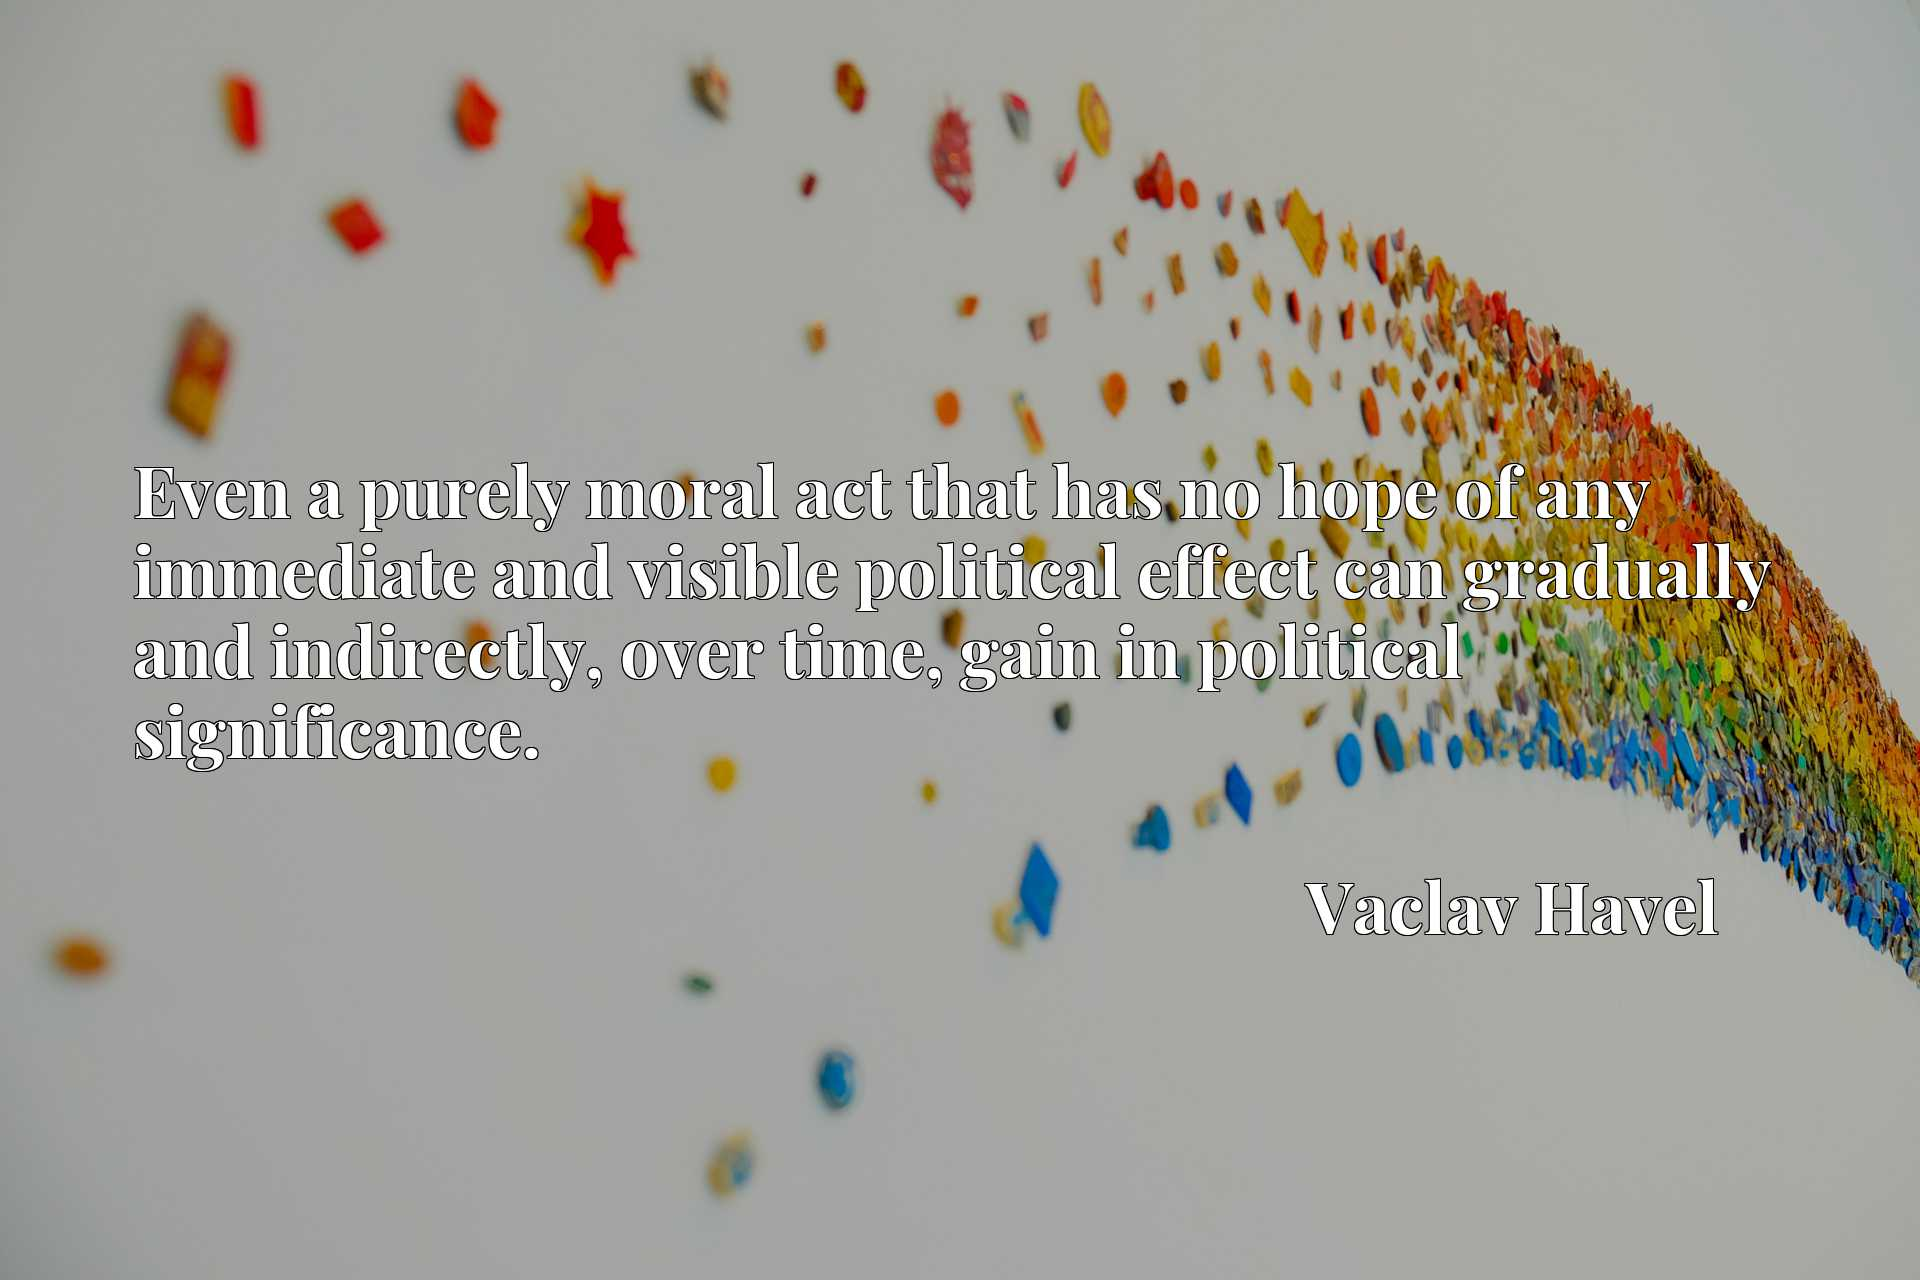 Even a purely moral act that has no hope of any immediate and visible political effect can gradually and indirectly, over time, gain in political significance.